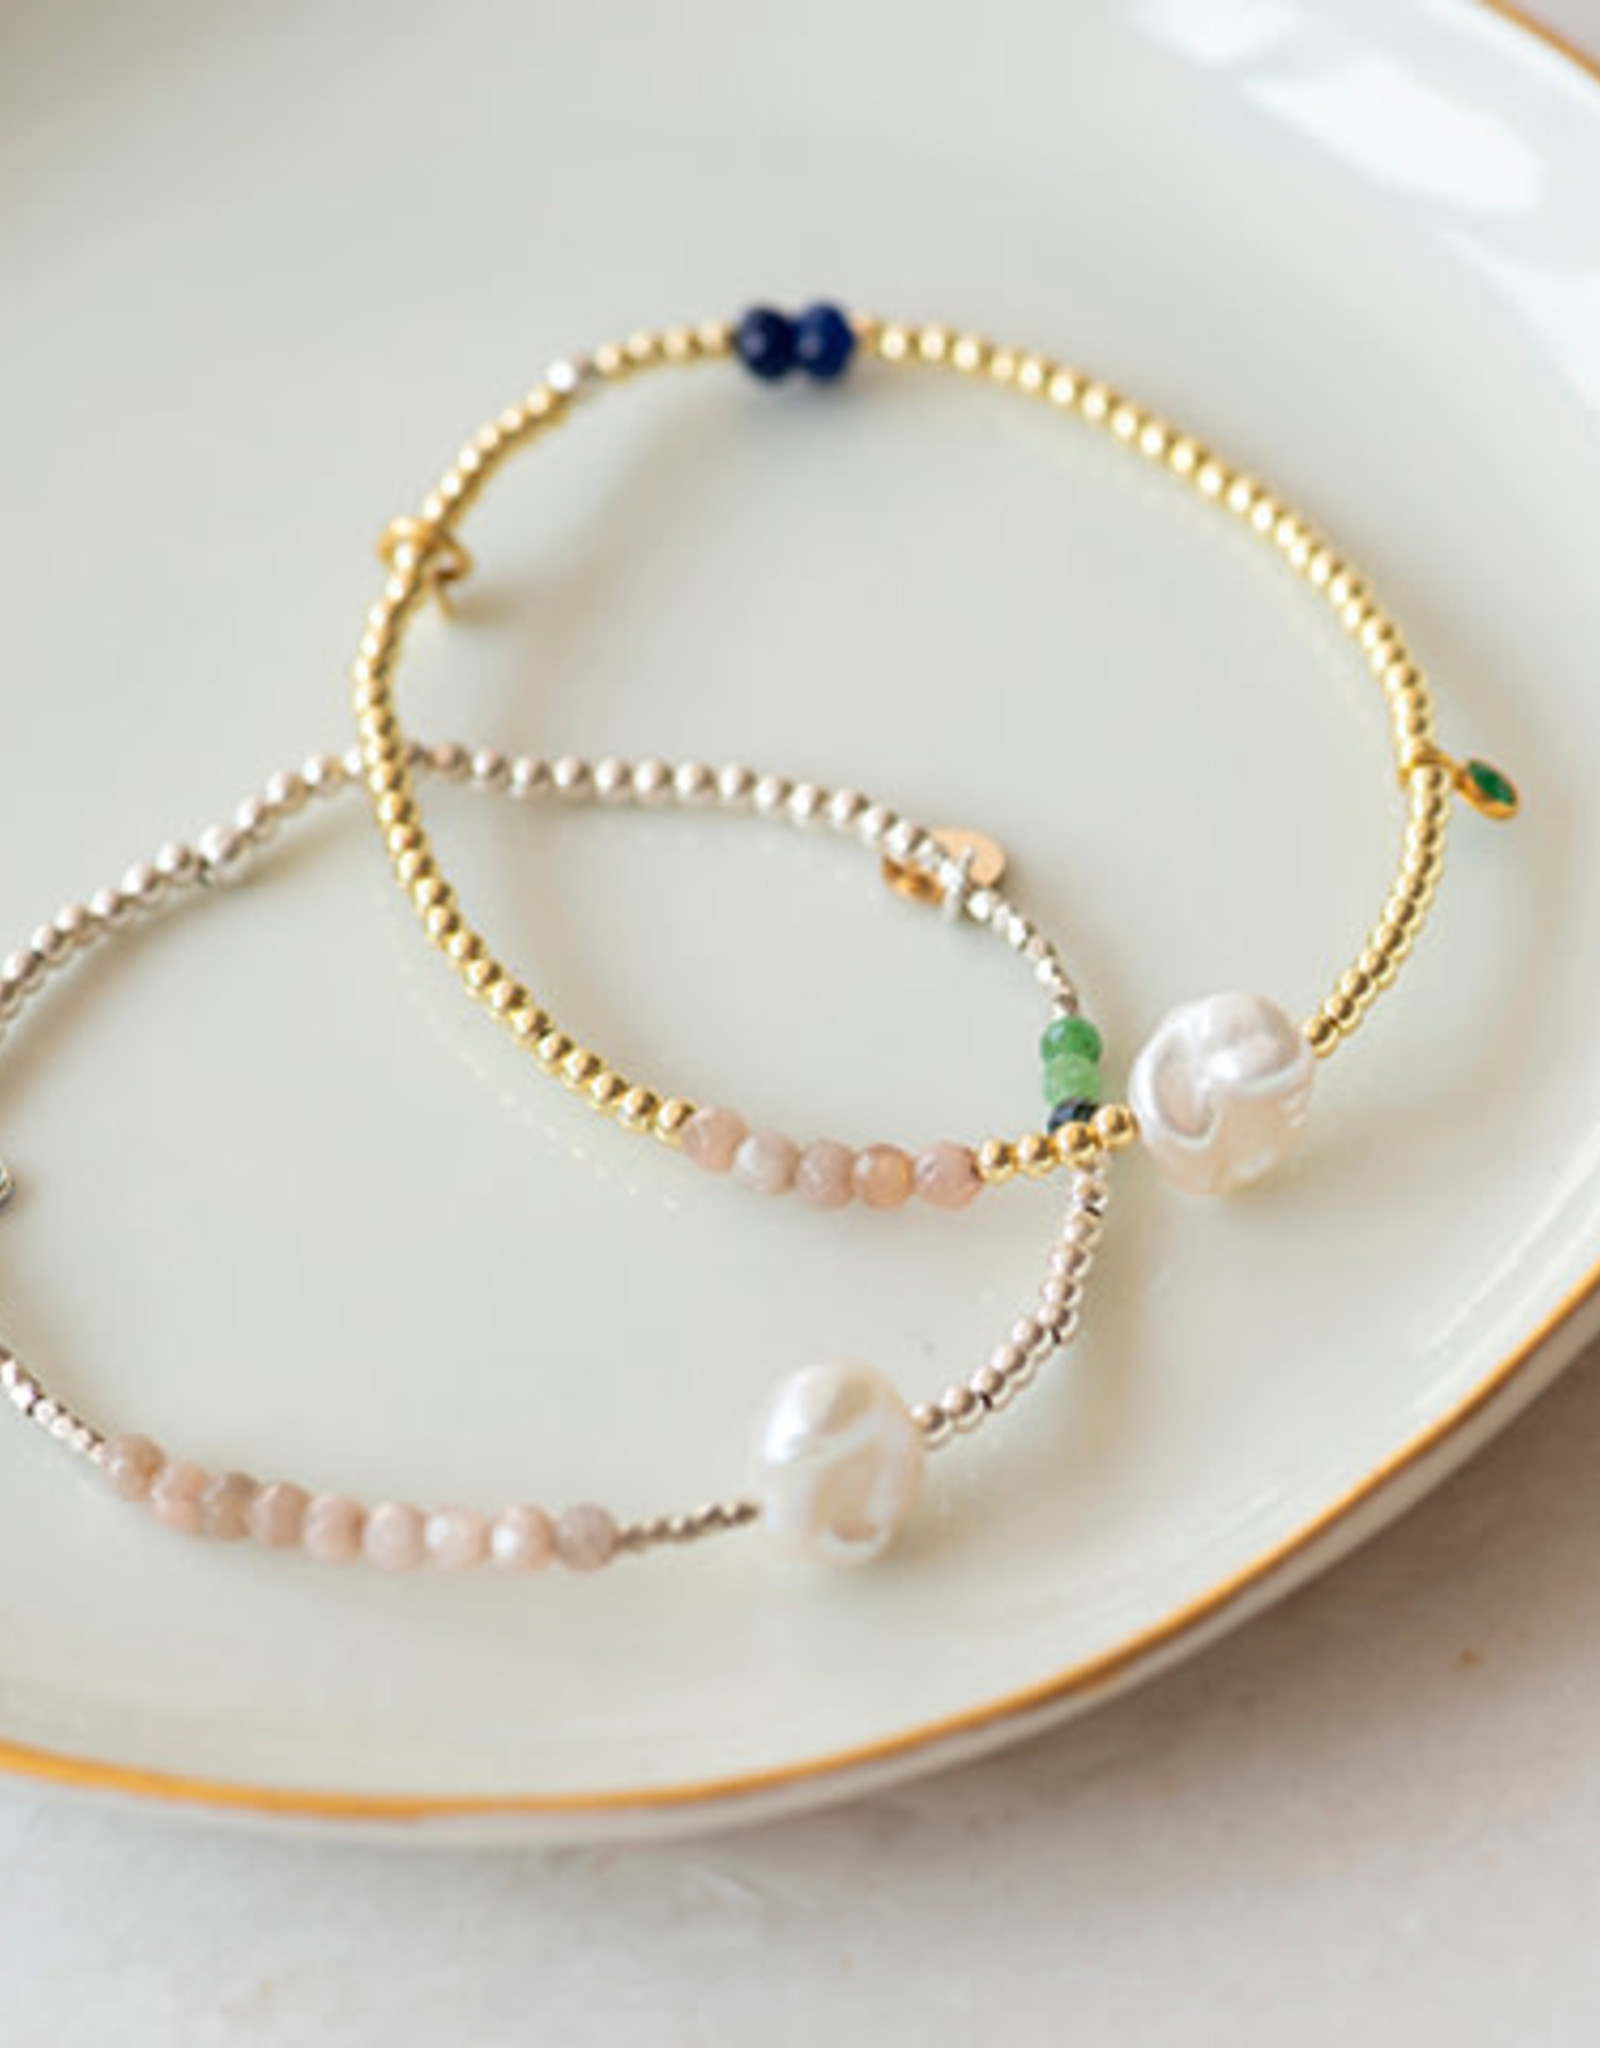 Jules Bean Armband Collectabean Ella-gold/mix gems/pearl